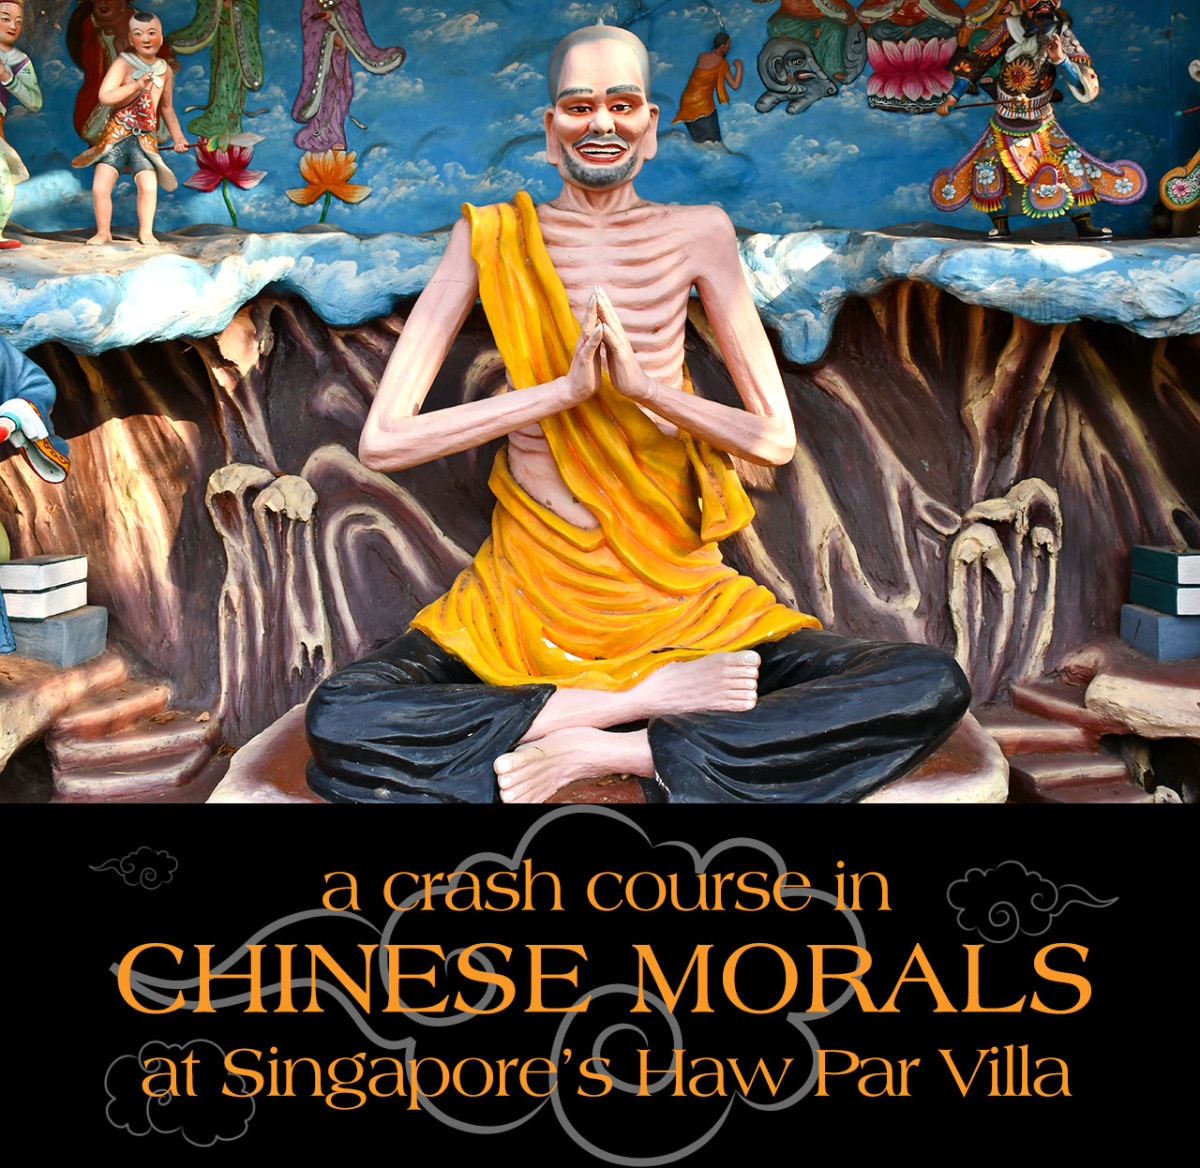 A Crash Course in Chinese Morals at Singapore's Haw Par Villa